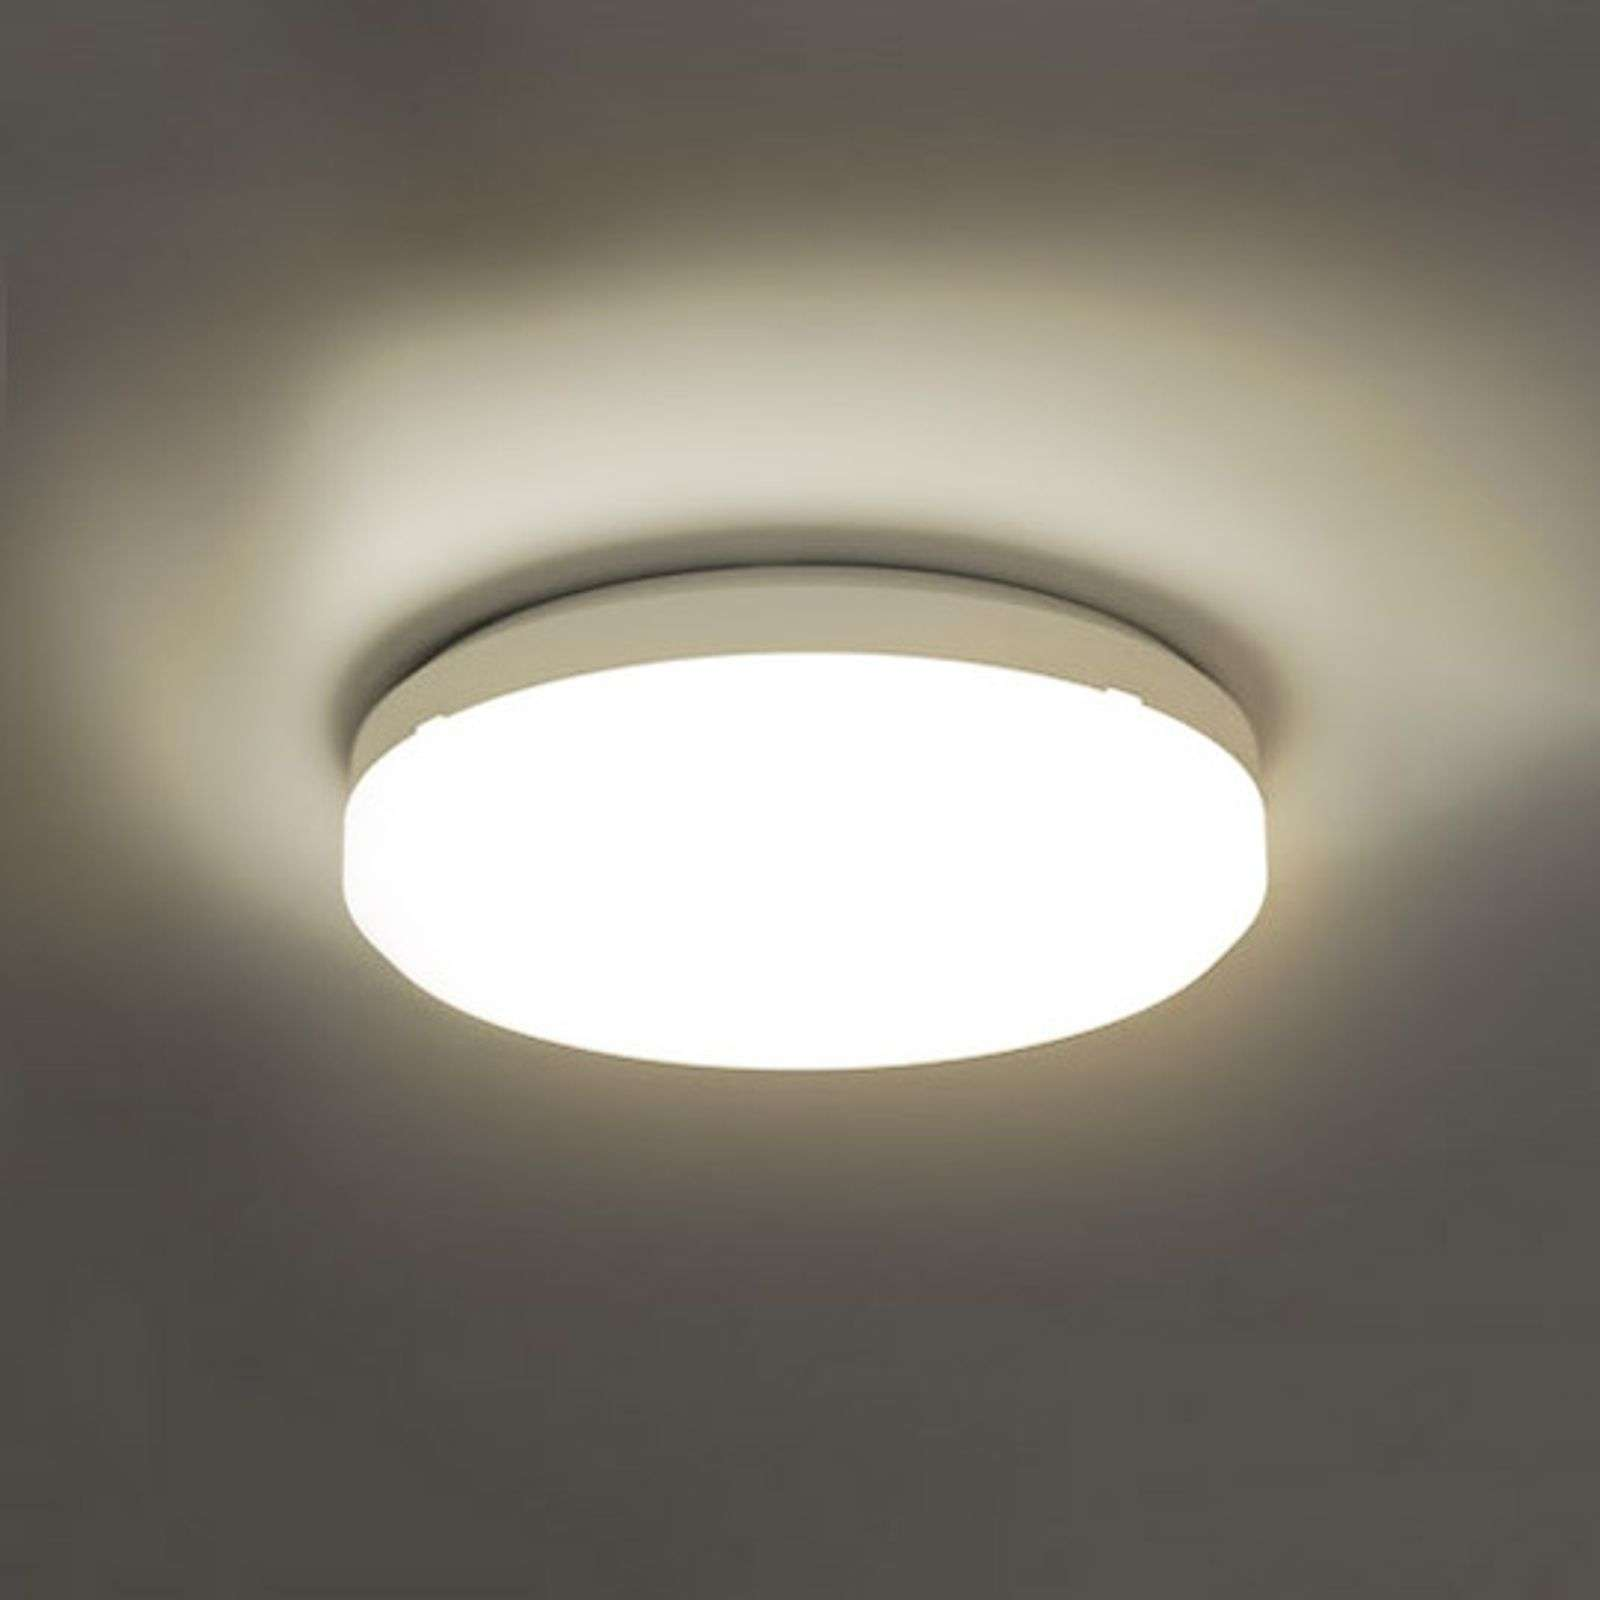 Sun 15 - lampada LED IP65, 26 W 3000K ww